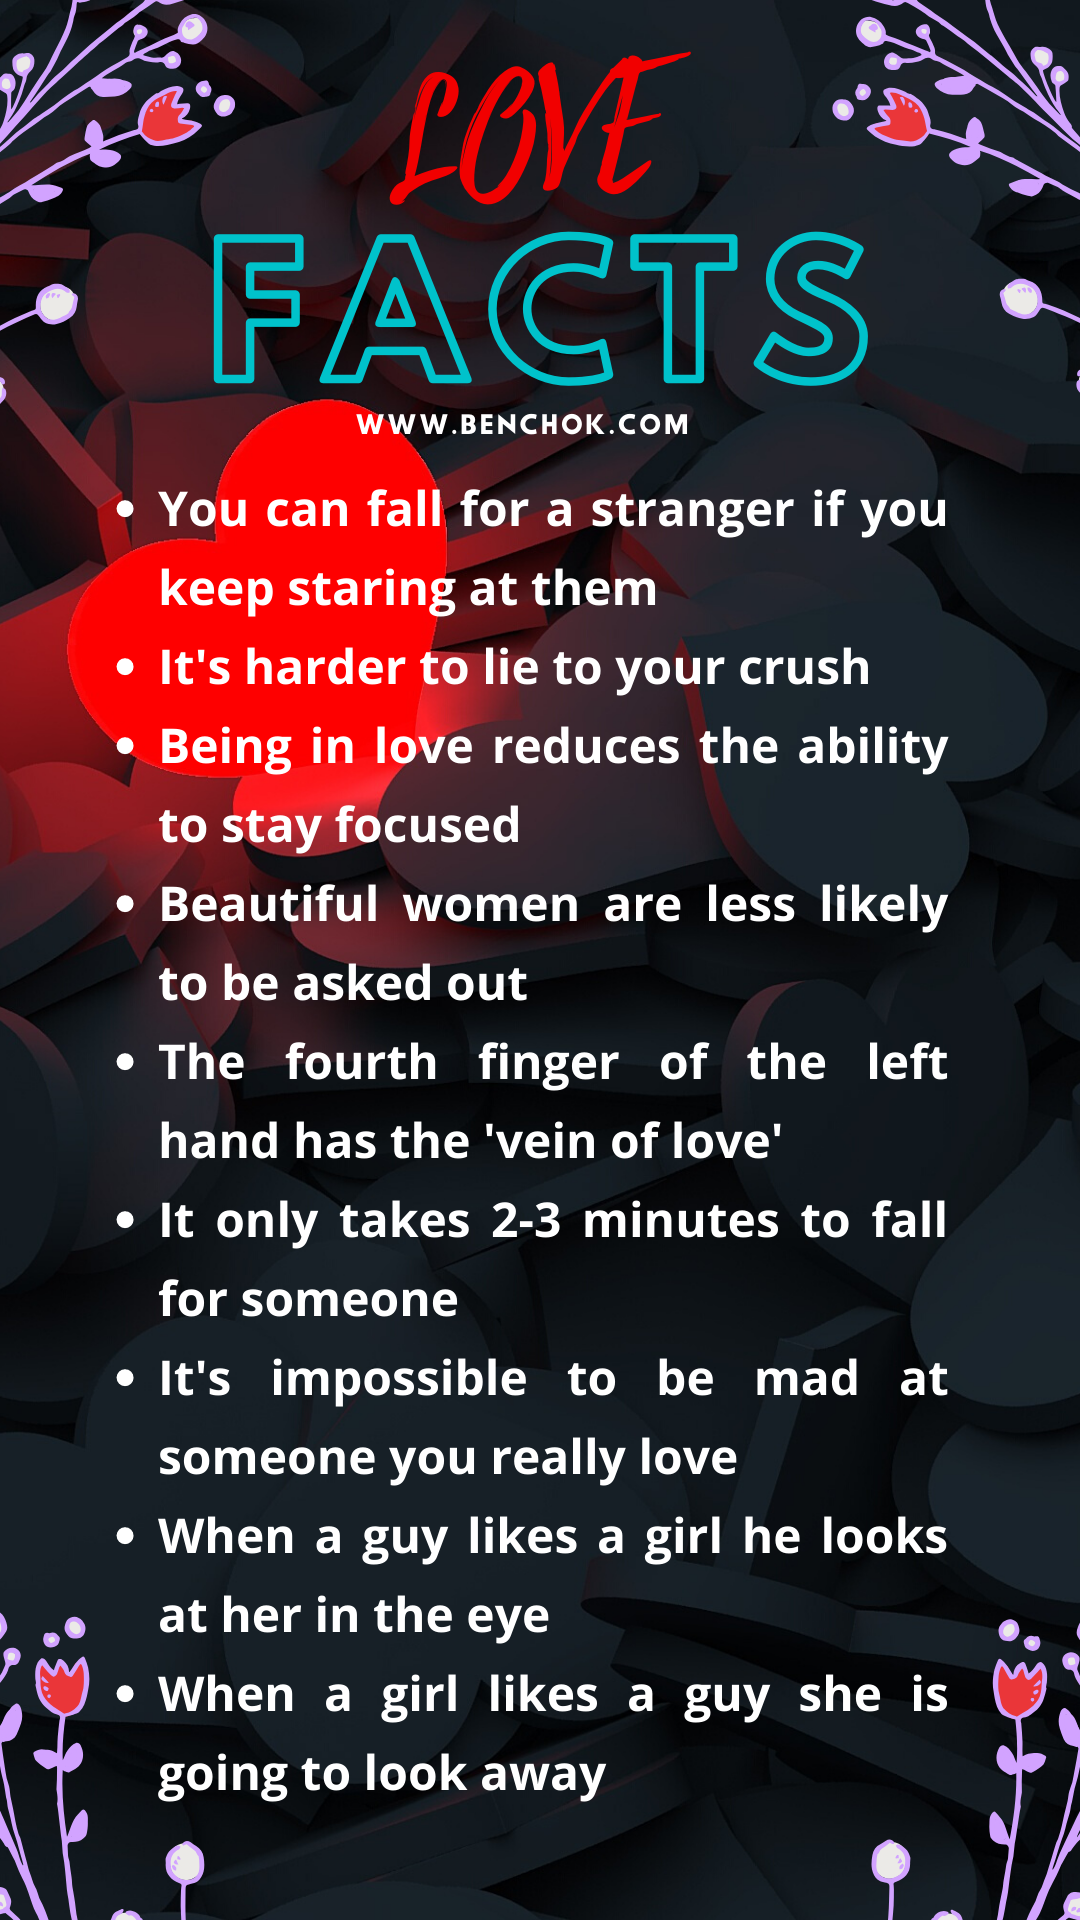 38 interesting psychological facts about LOVE